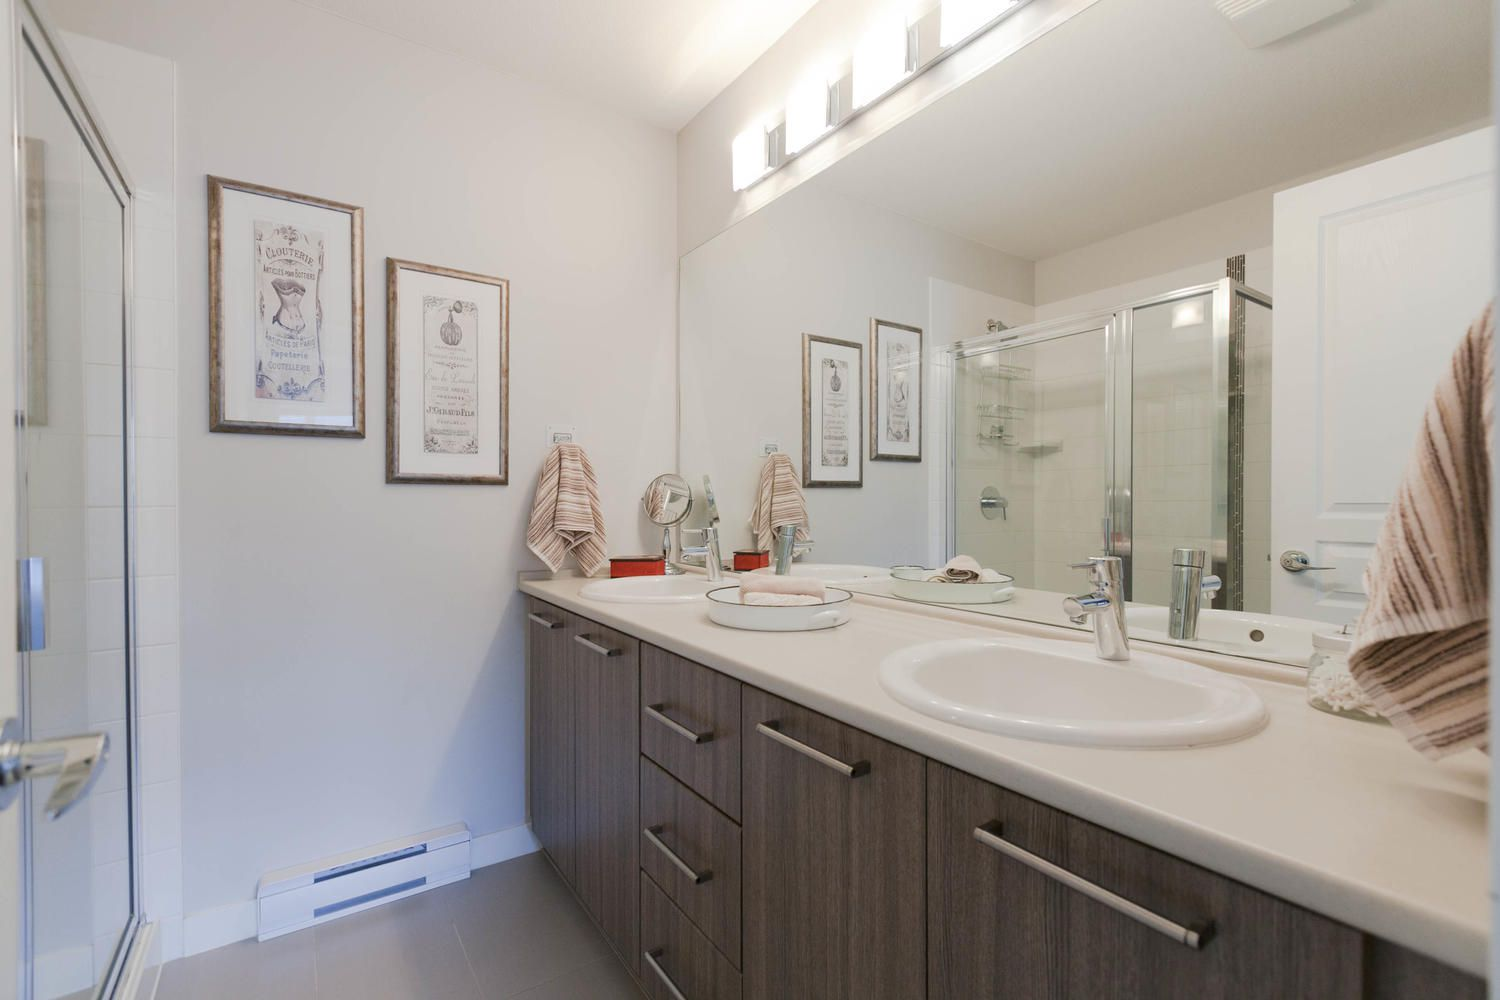 """Photo 30: Photos: 97 7938 209 Street in Langley: Willoughby Heights Townhouse for sale in """"Red Maple Park"""" : MLS®# R2260950"""